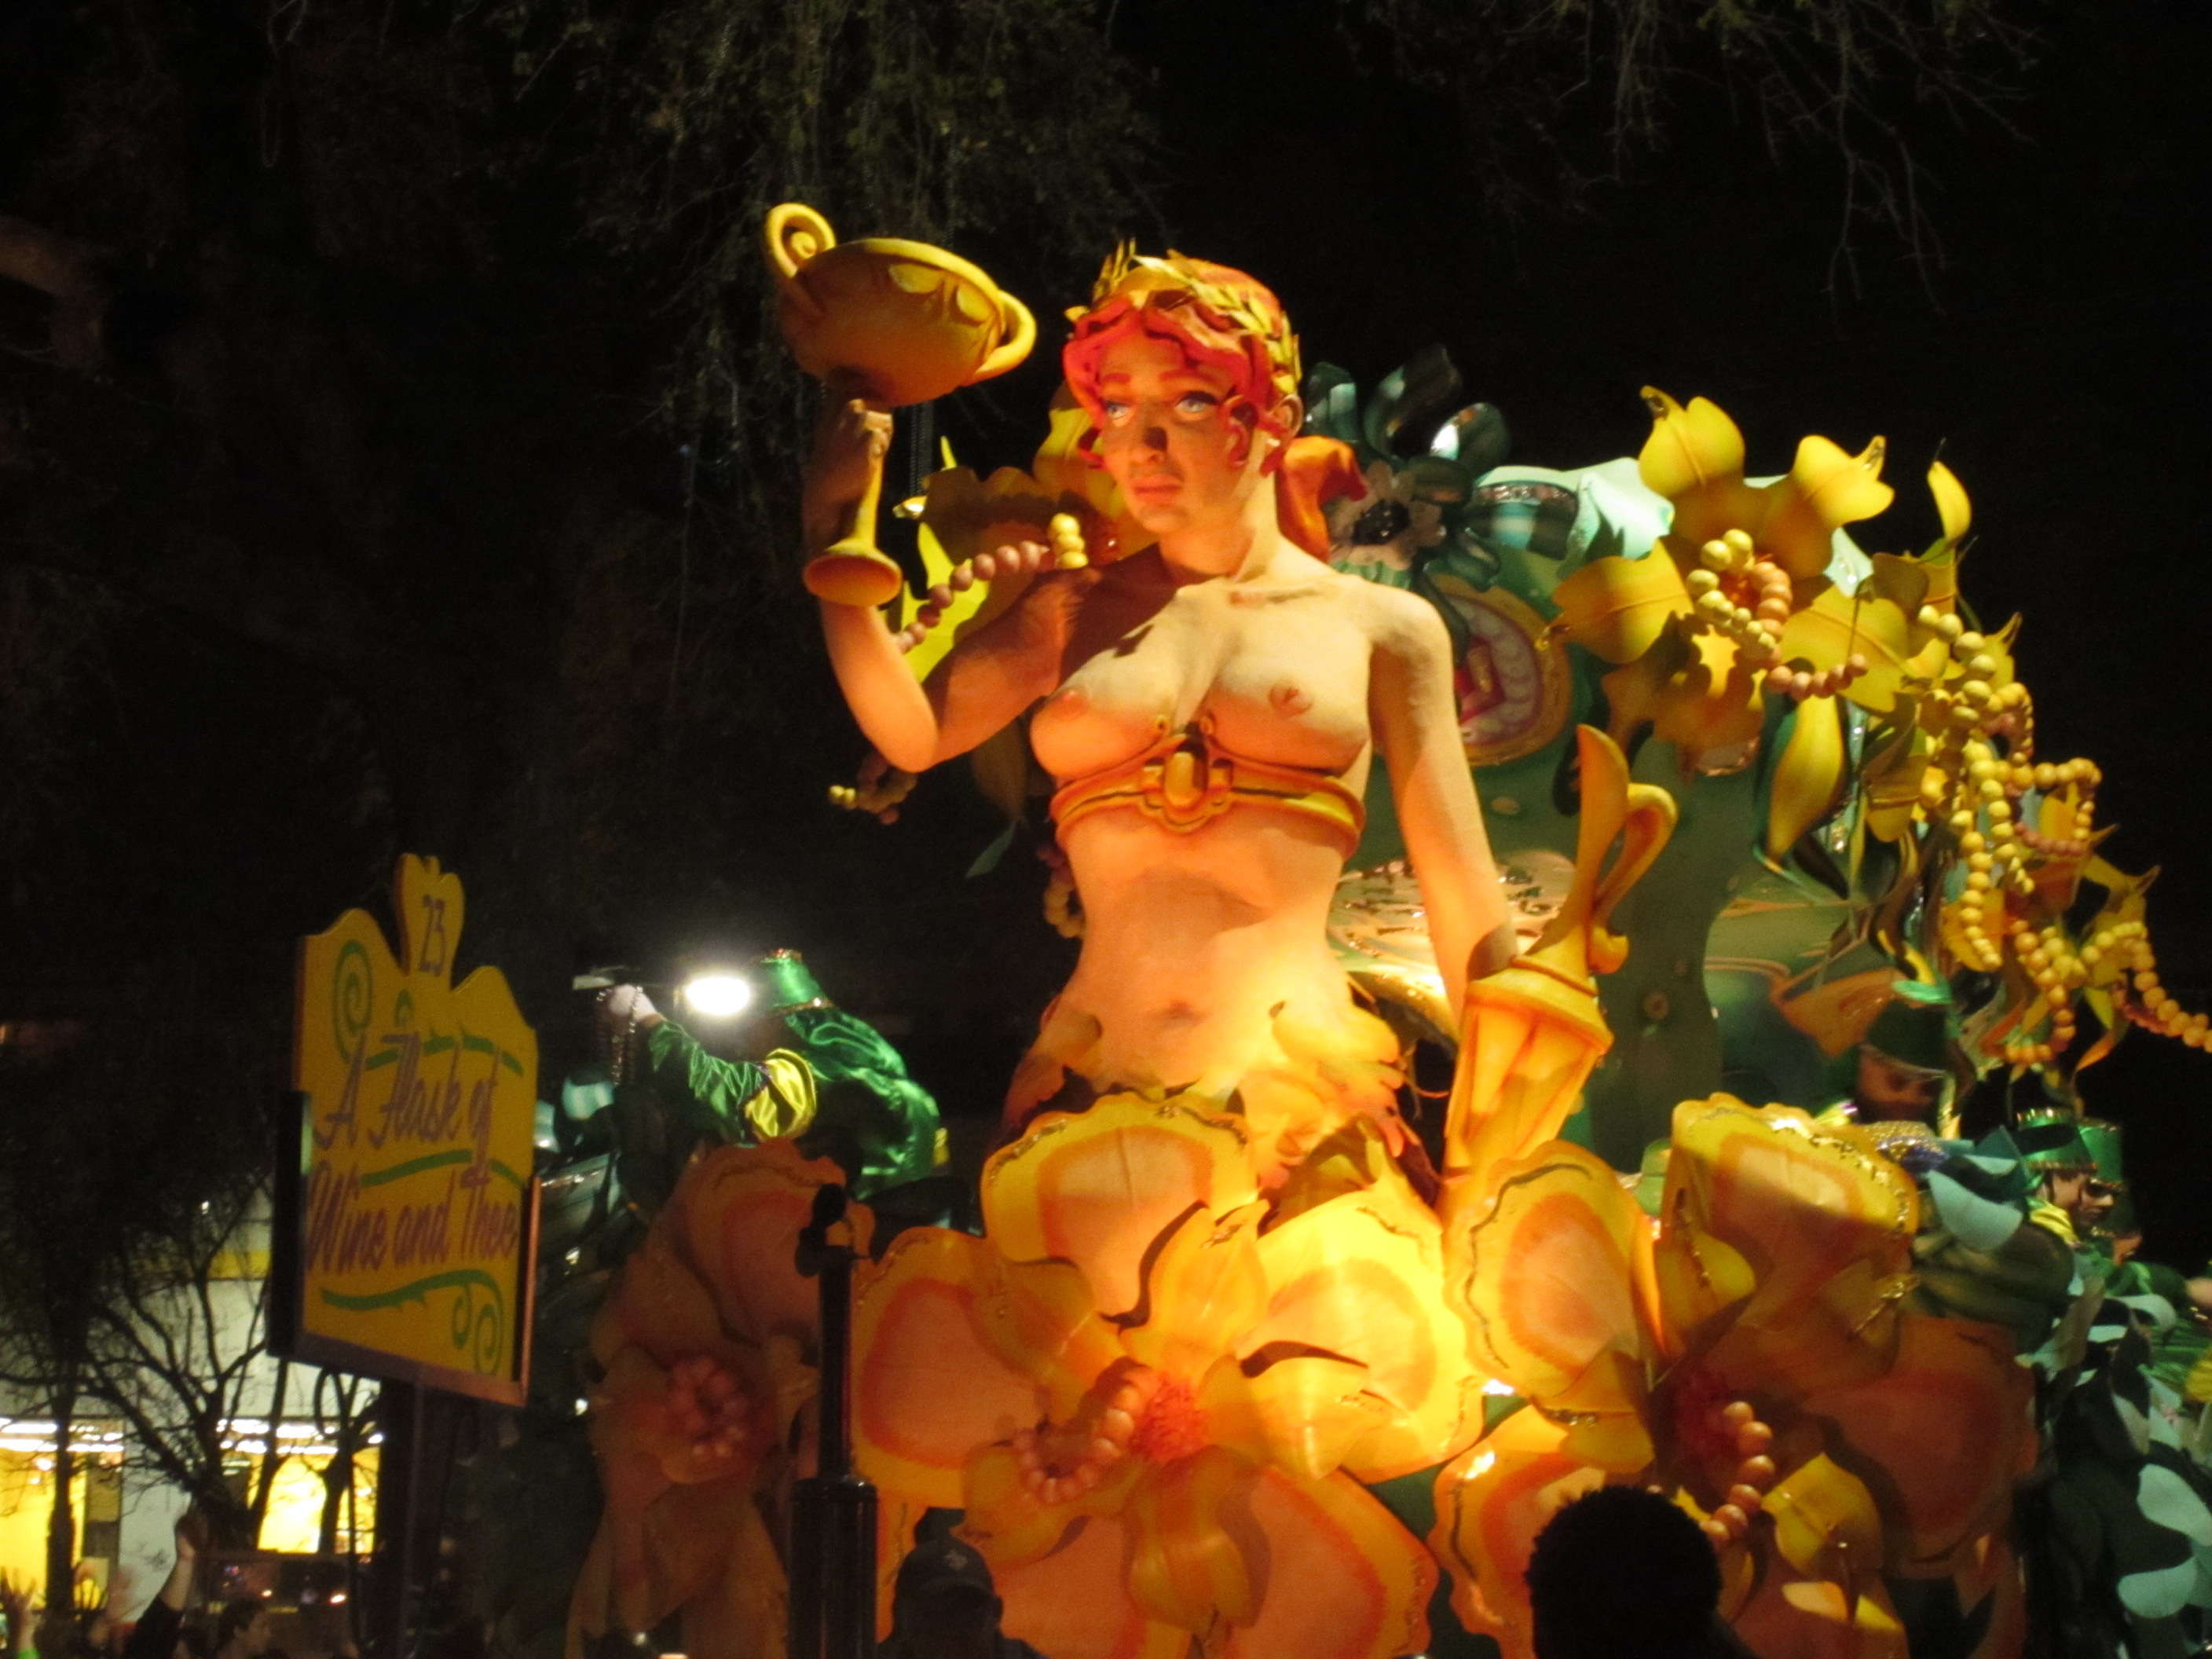 mardi gras in the united states